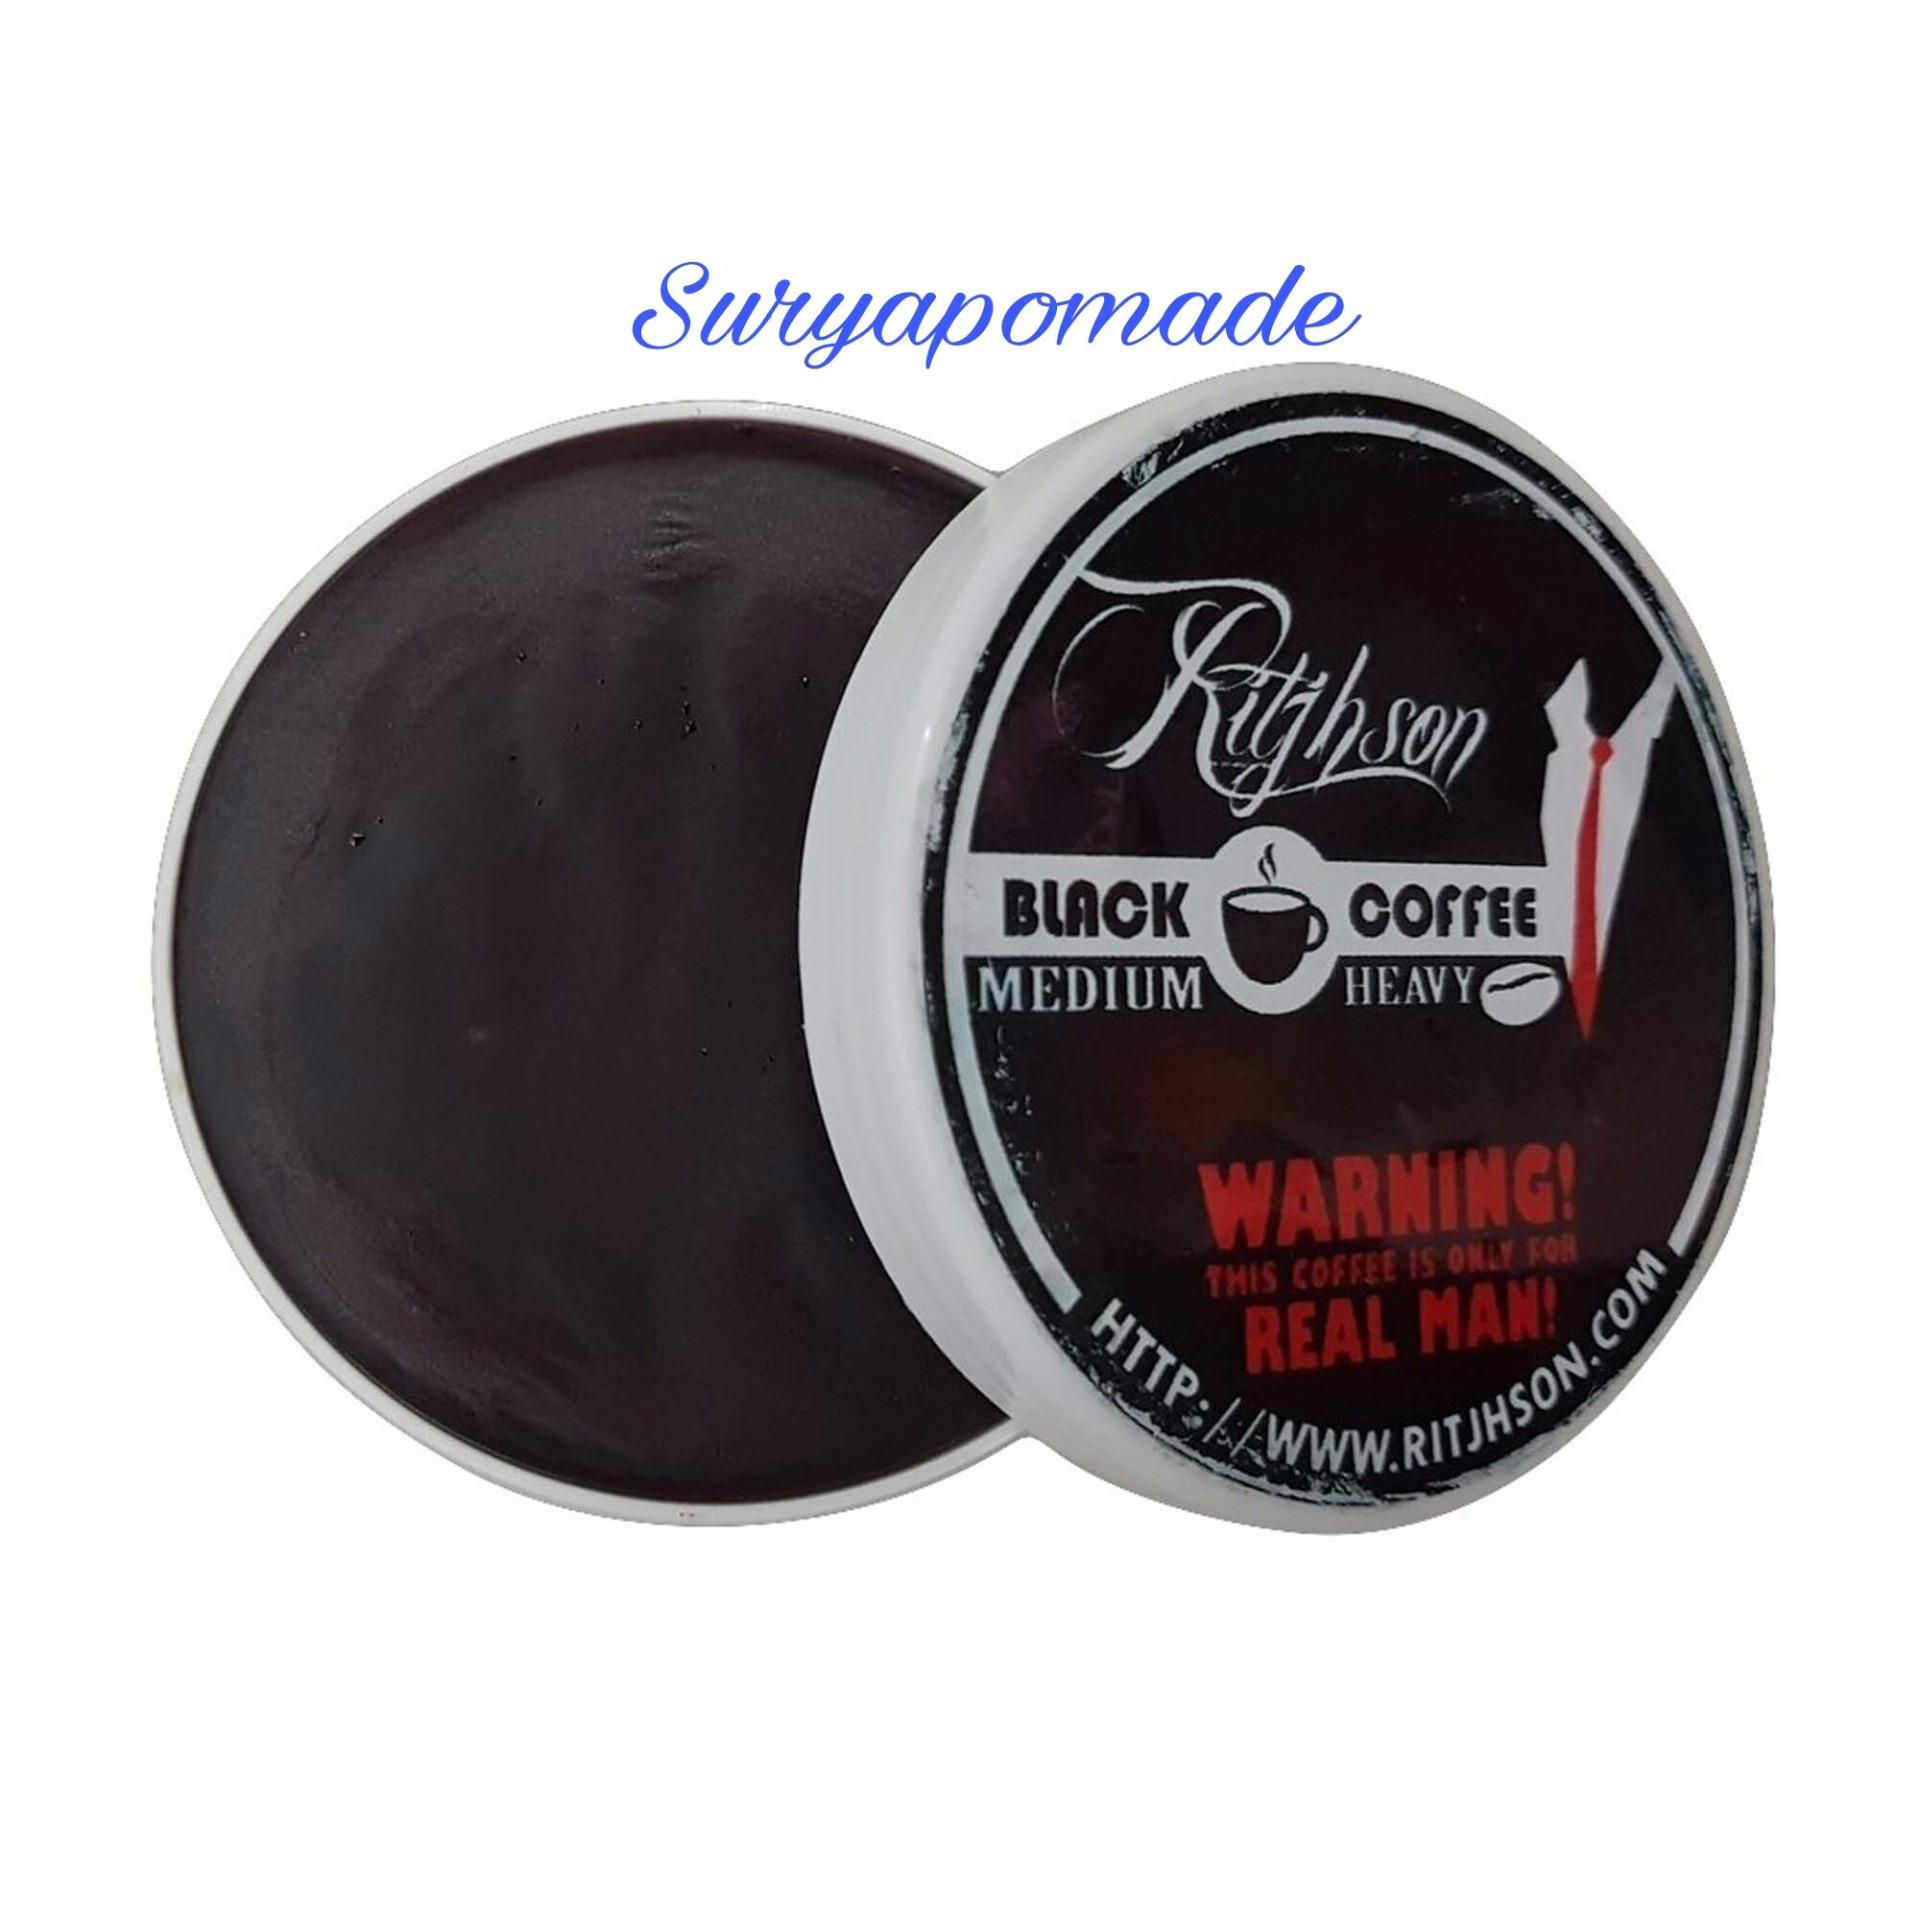 Pomade Ritjhson Black Coffee Kopi Strong Hold Oilbase 3.5oz - Free Sisir